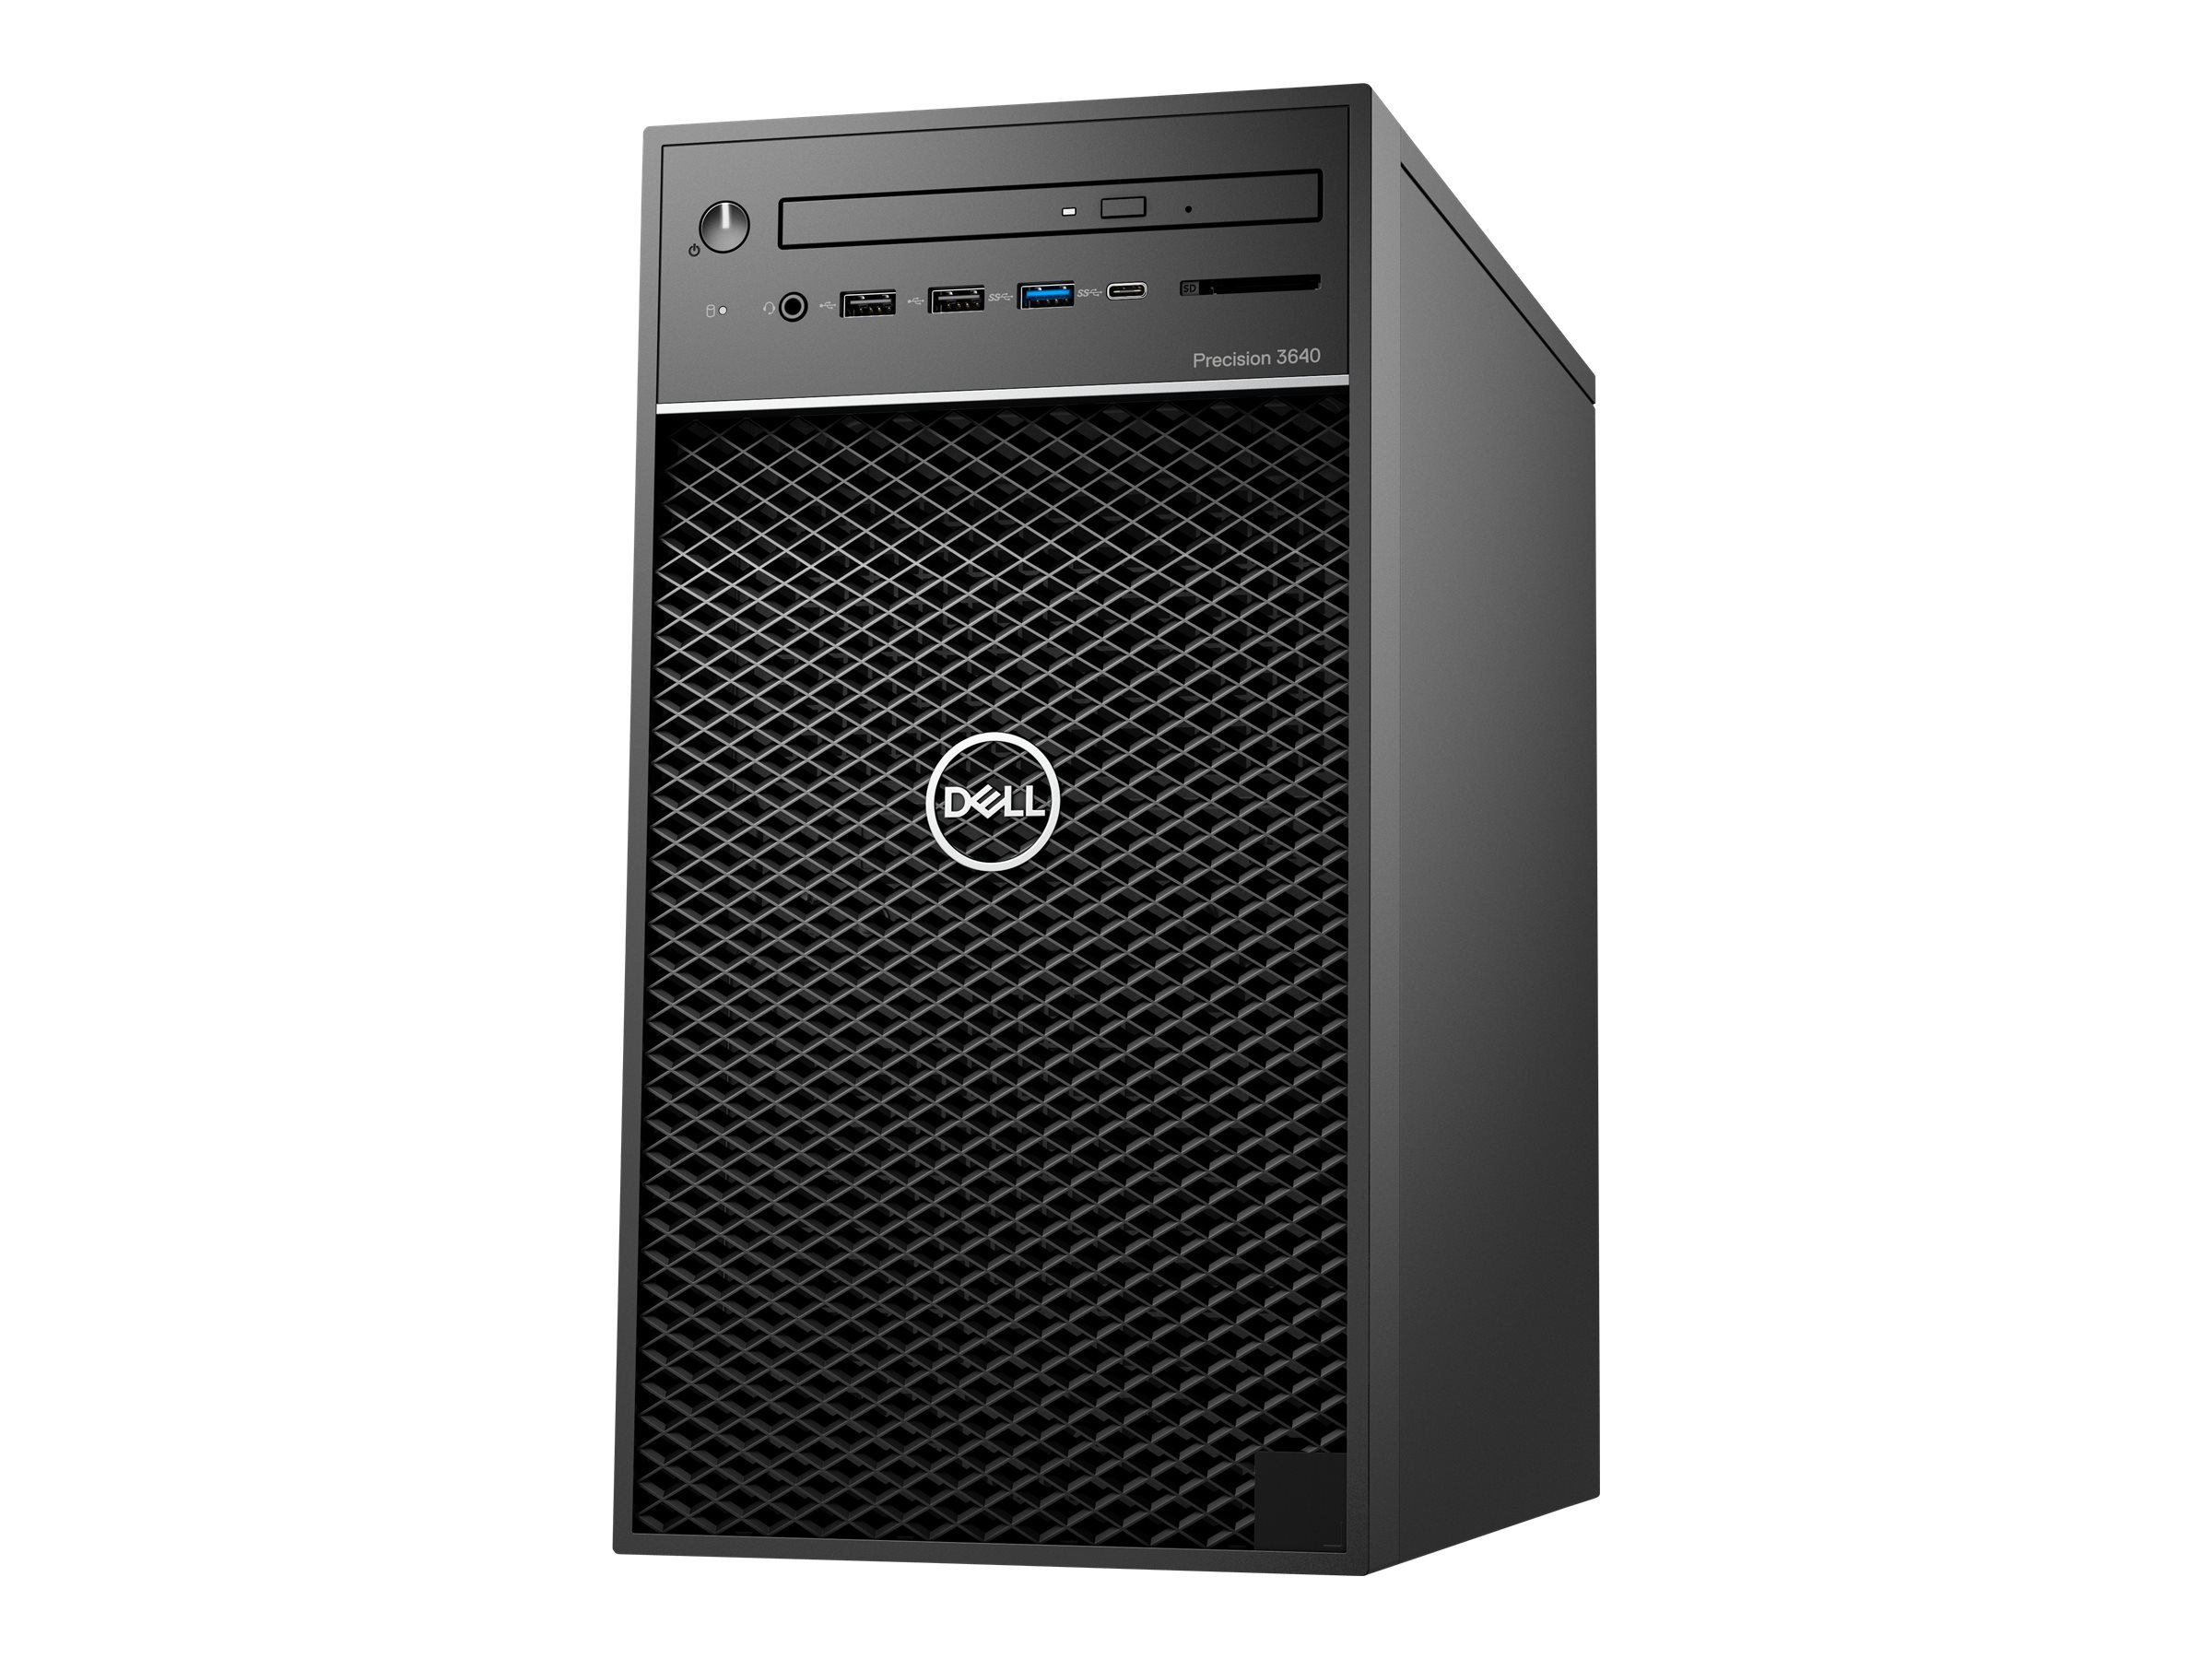 Dell 3640 Tower - MT - 1 x Core i5 10500 / 3.1 GHz - vPro - RAM 8 GB - HDD 1 TB